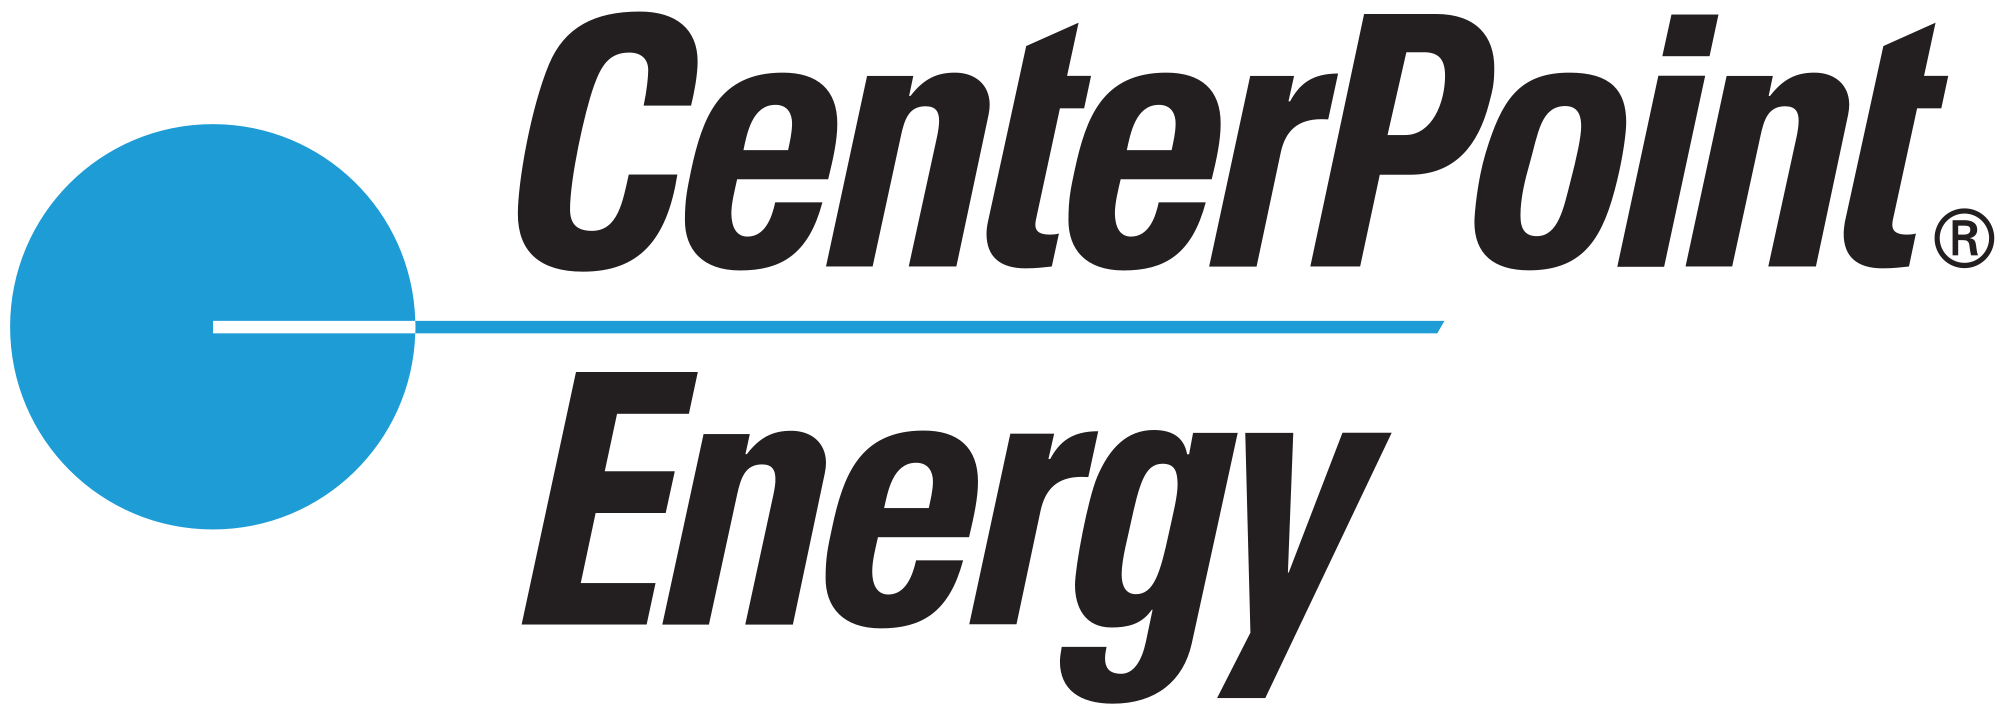 2000px-CenterPoint_Energy_logo.png